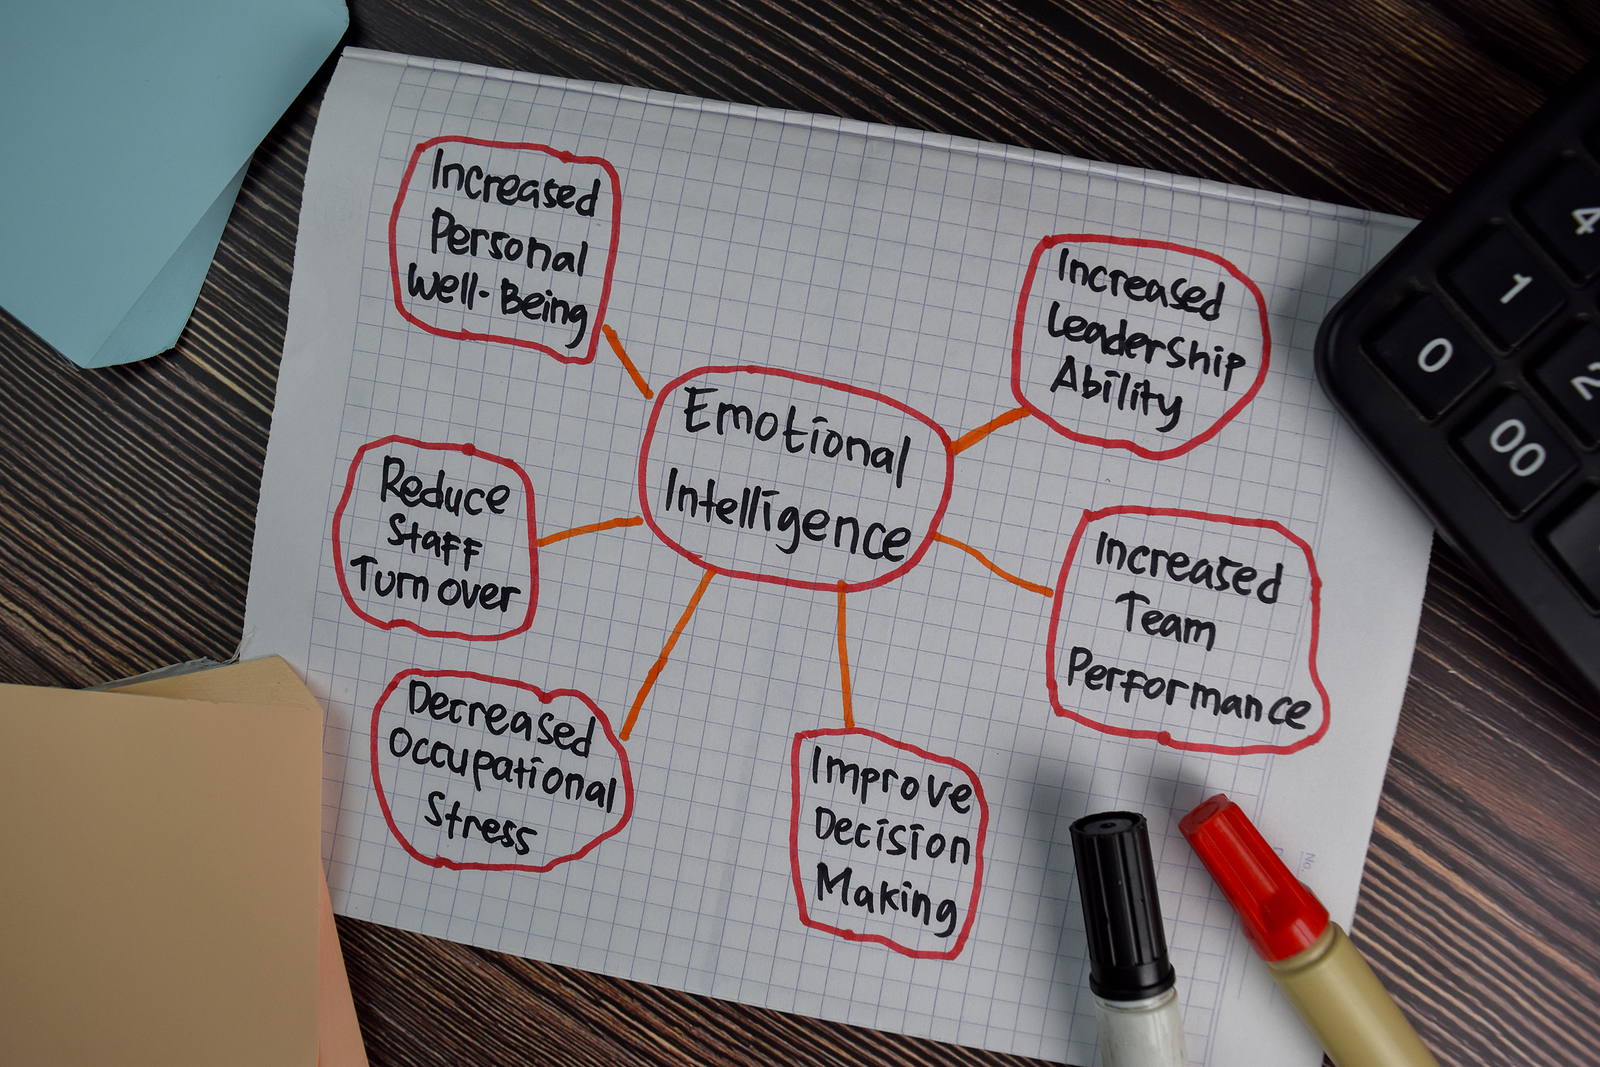 Ready to Up Your Leadership Skills? Emotional Intelligence is the Key